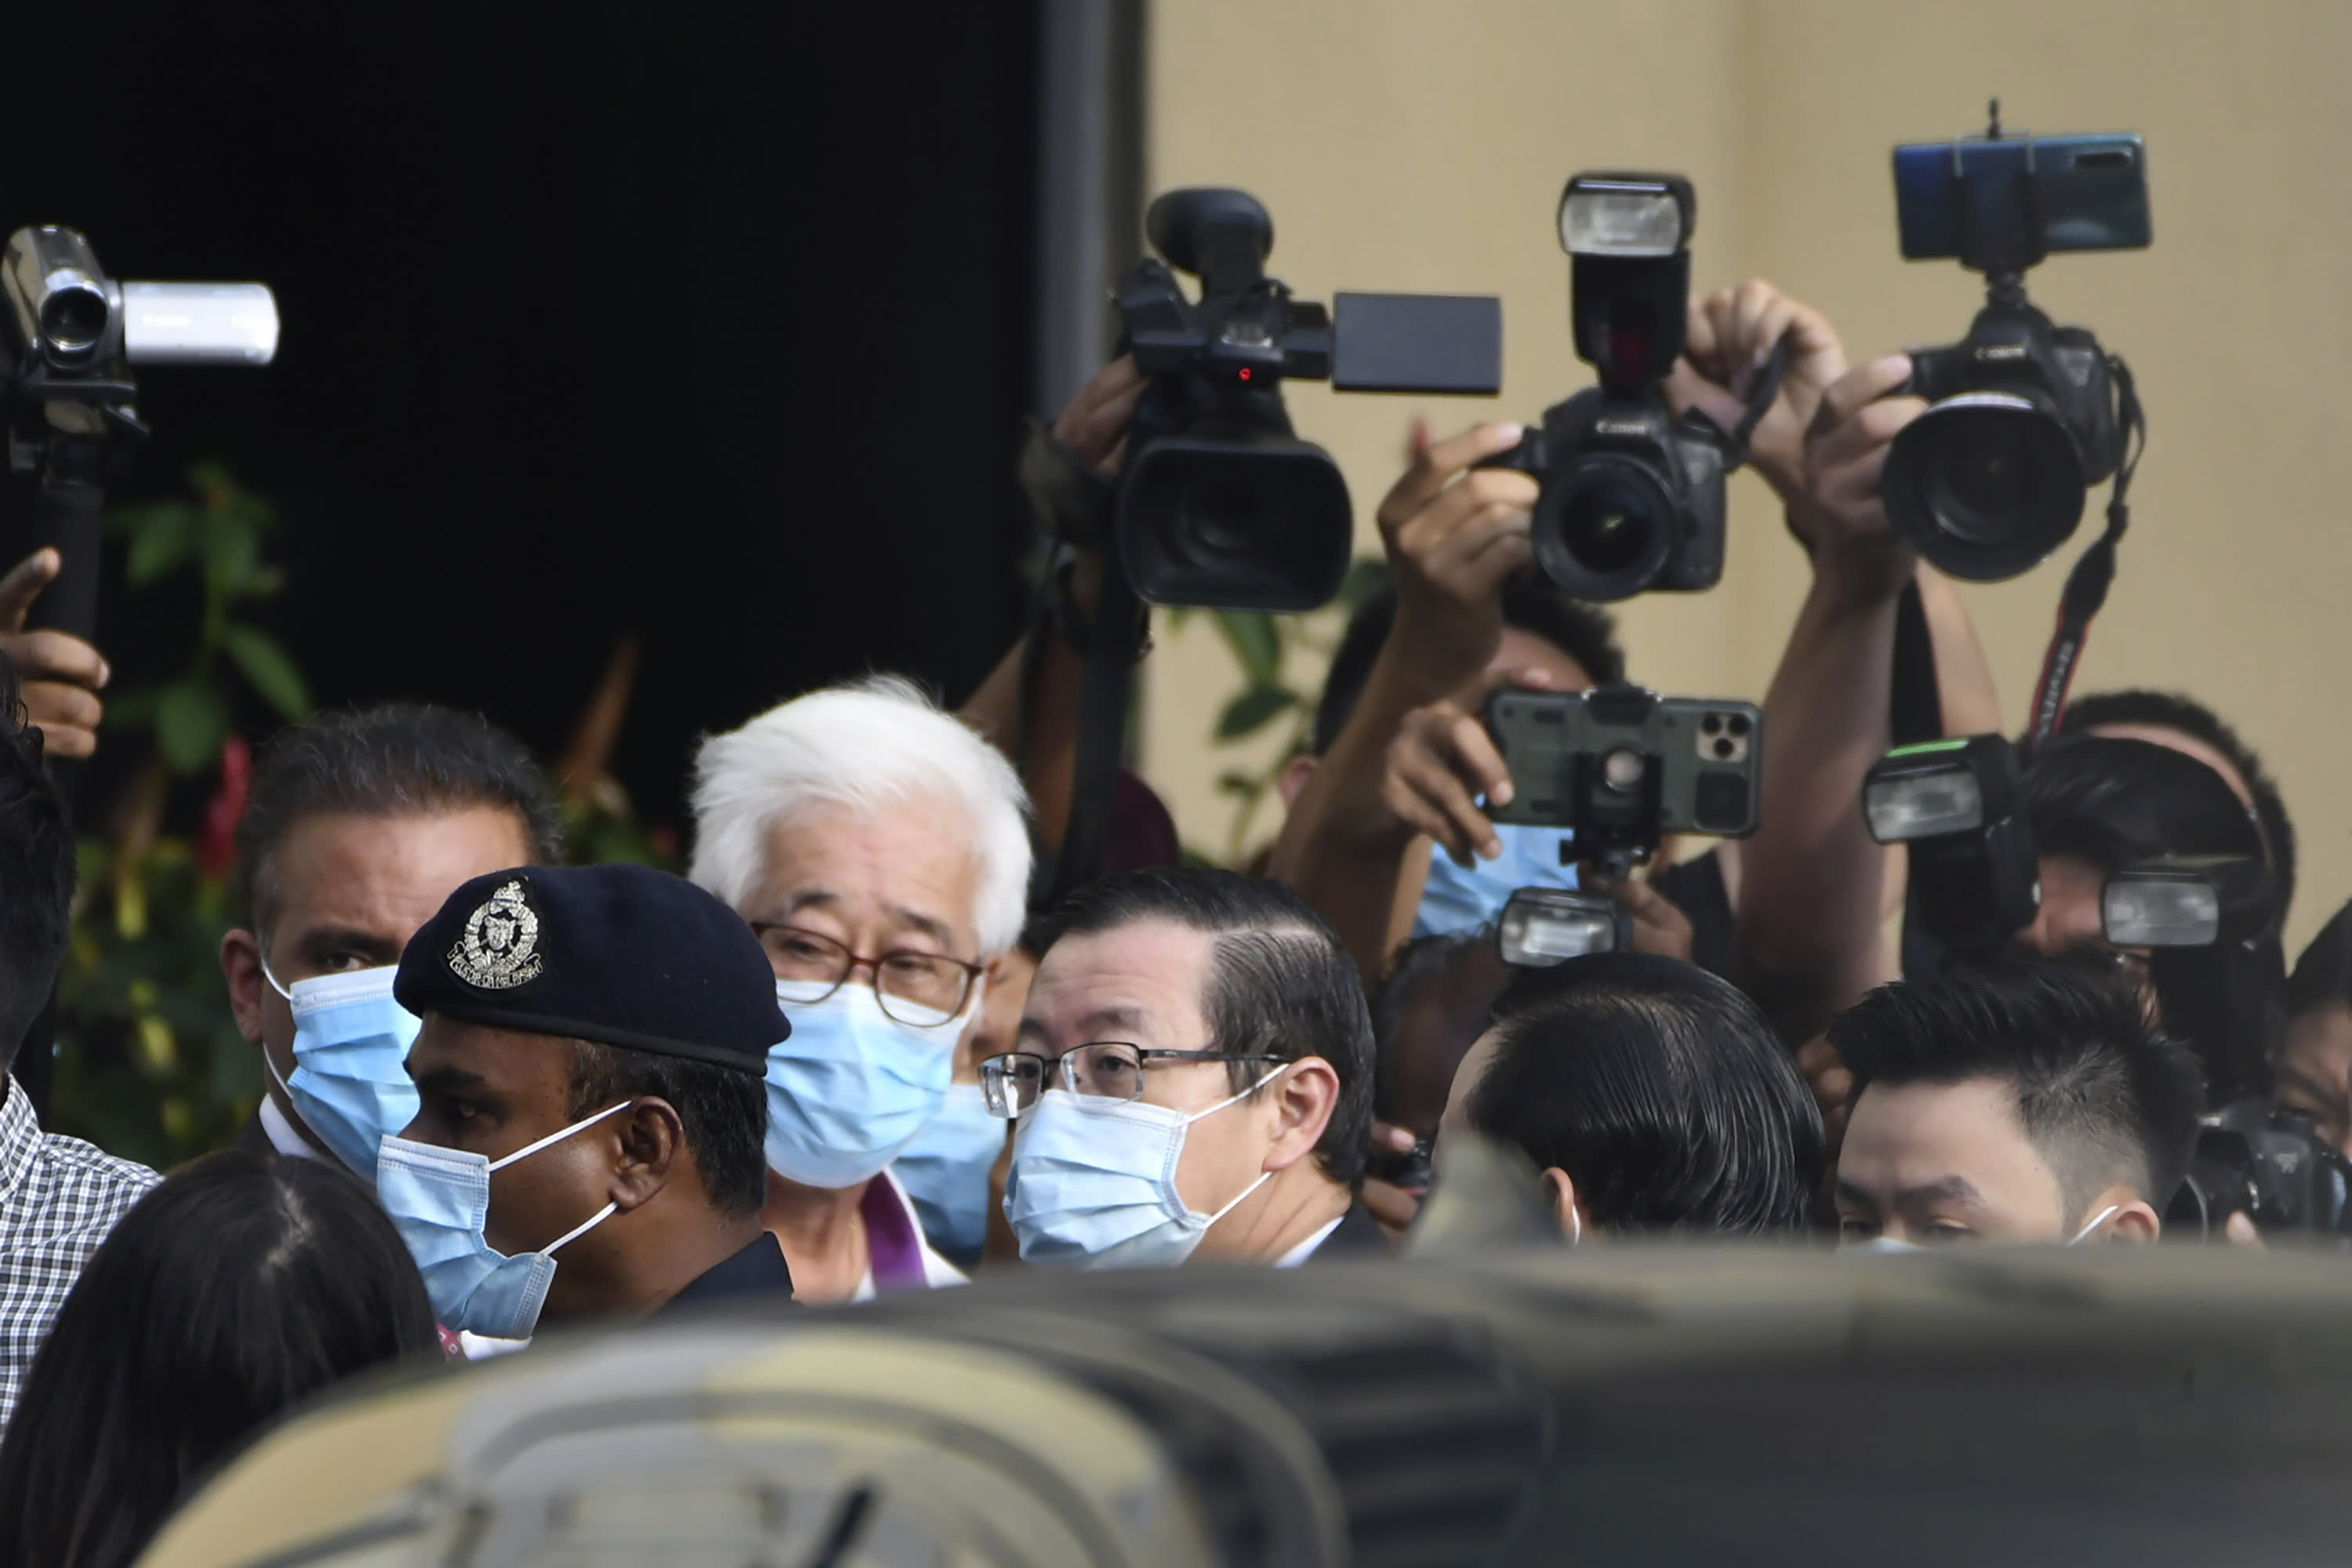 Malaysian former Finance Minister and Penang Chief Minister Lim Guan Eng, center, arrives at courthouse in Butterworth, Malaysia, Monday, Aug. 10, 2020. Lim pleaded not guilty to a second graft charge relating to a $1.5 billion undersea tunnel project. Lim has slammed the charges as political persecution by the new government. (AP Photo/David ST Loh)